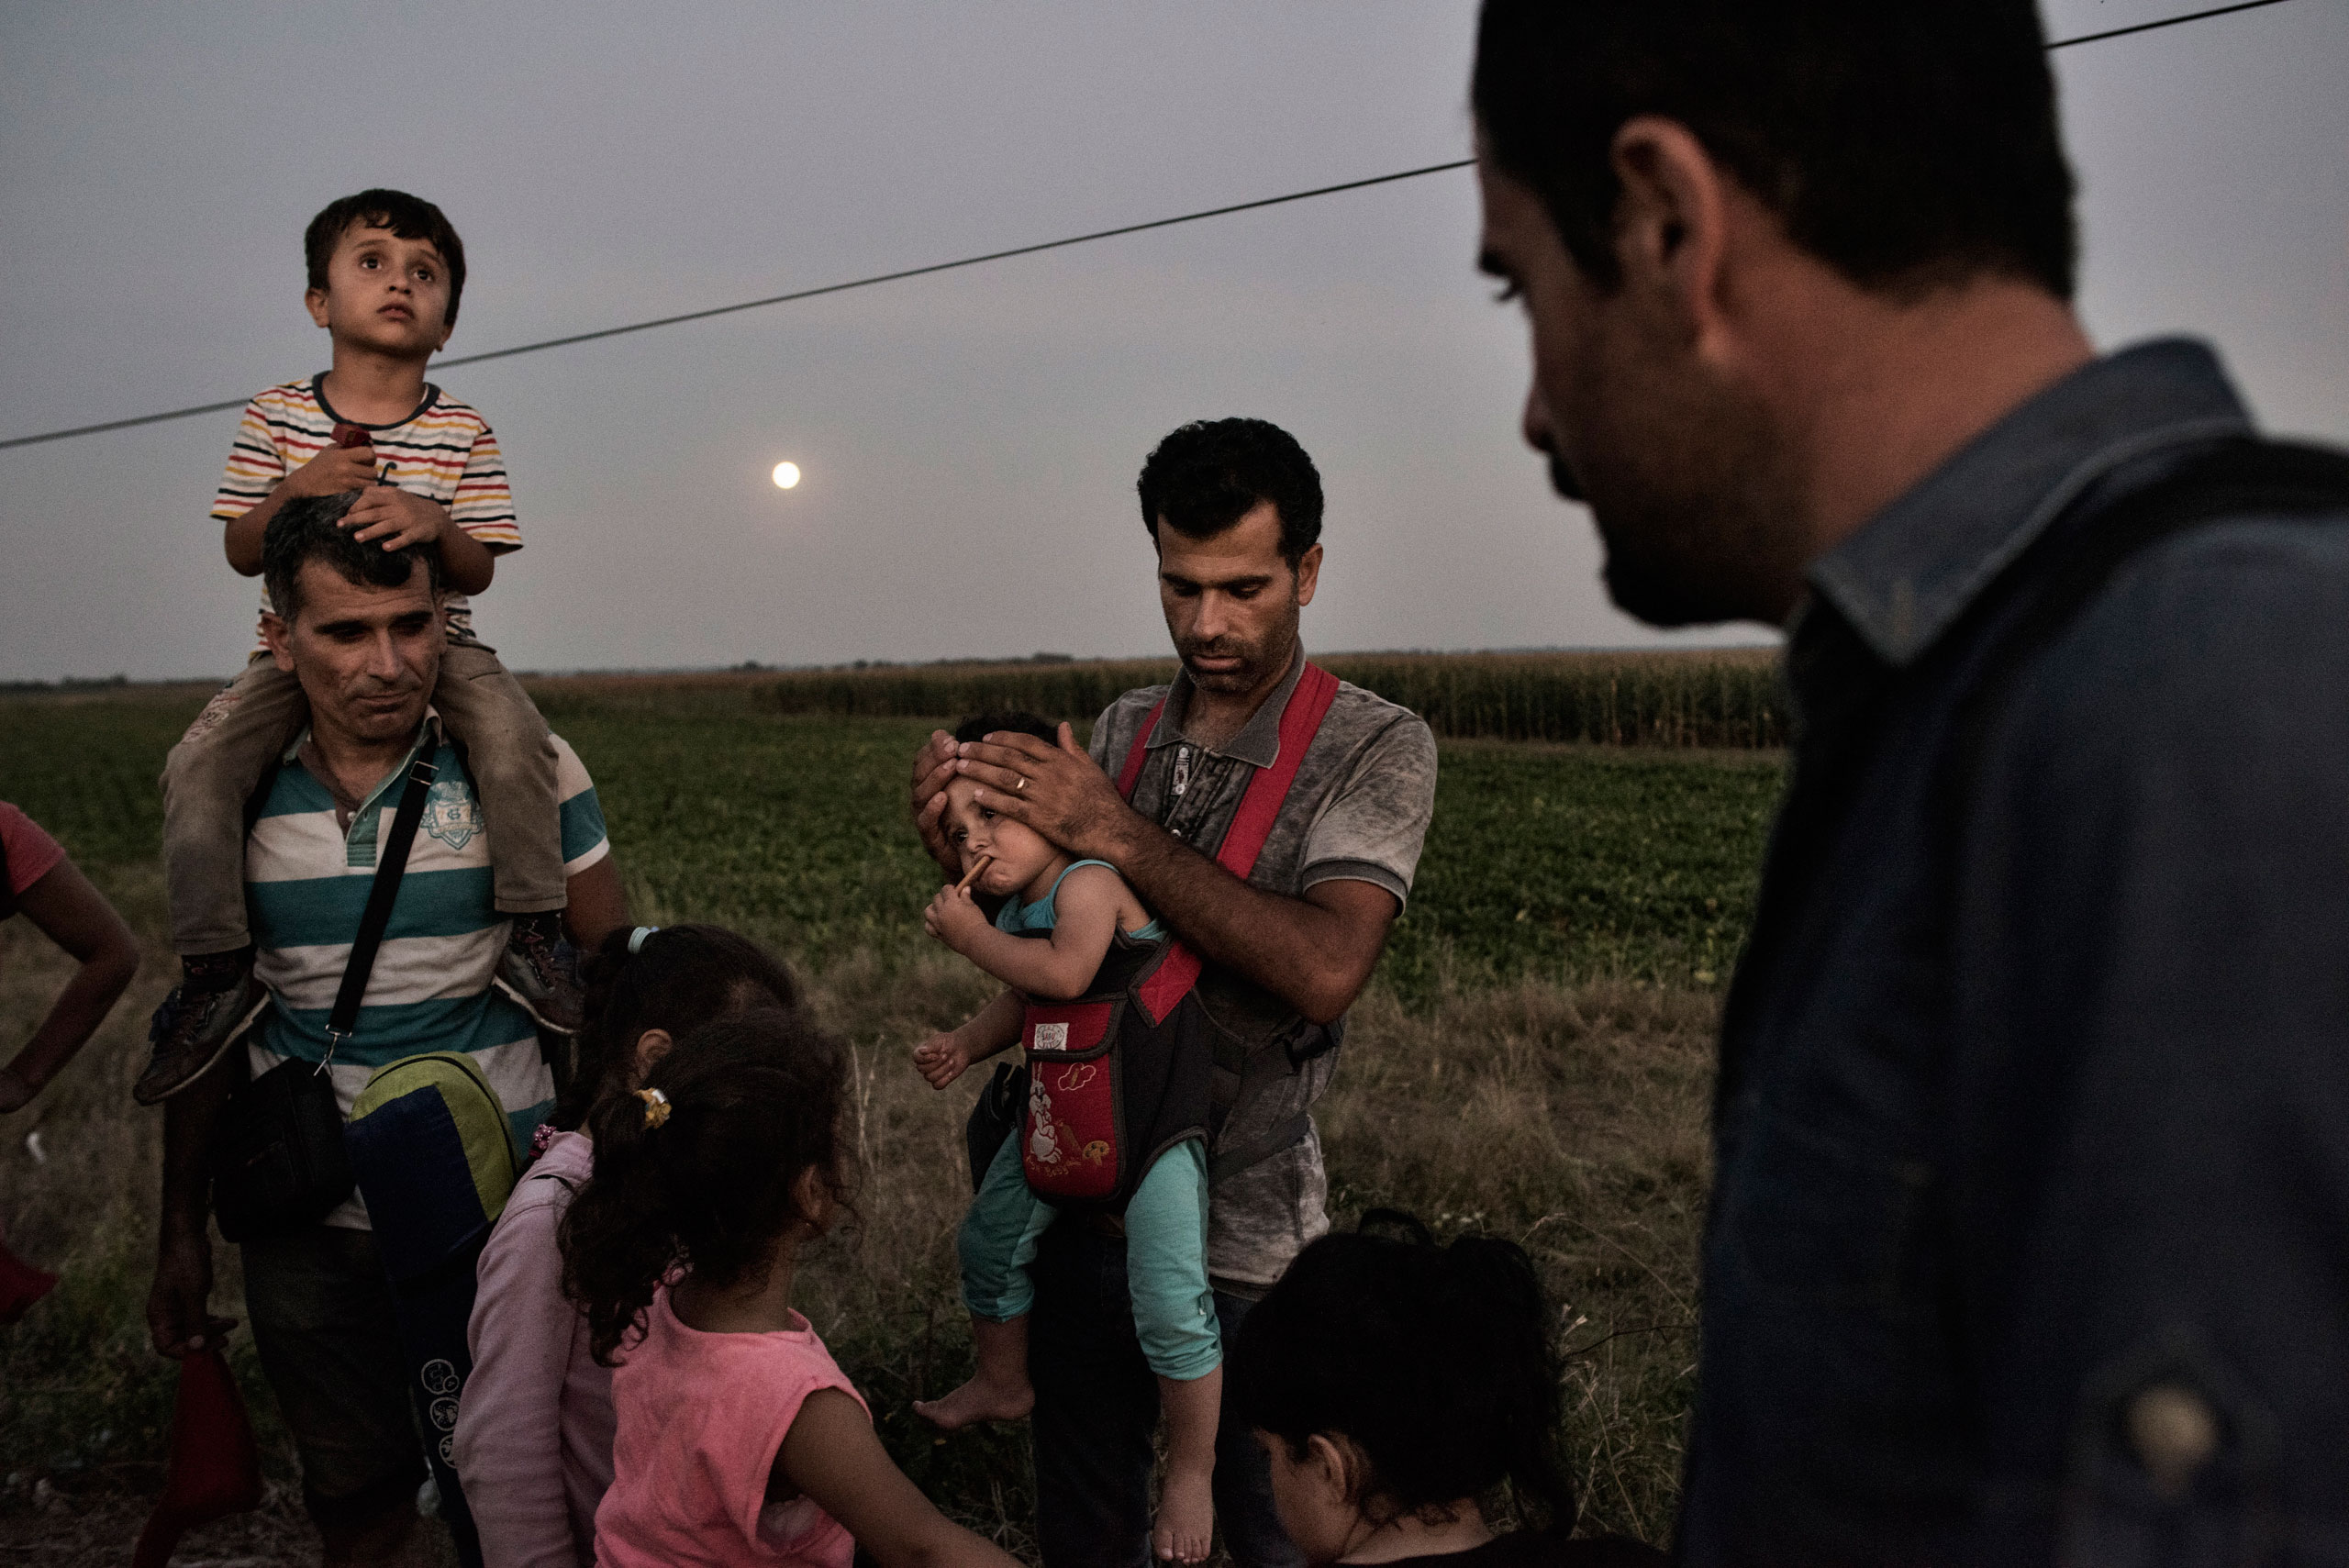 A Syrian family prepares to turn themselves into a Hungarian detention facility for migrants arriving in the European Union in Roszke, Hungary on Aug. 29, 2015.